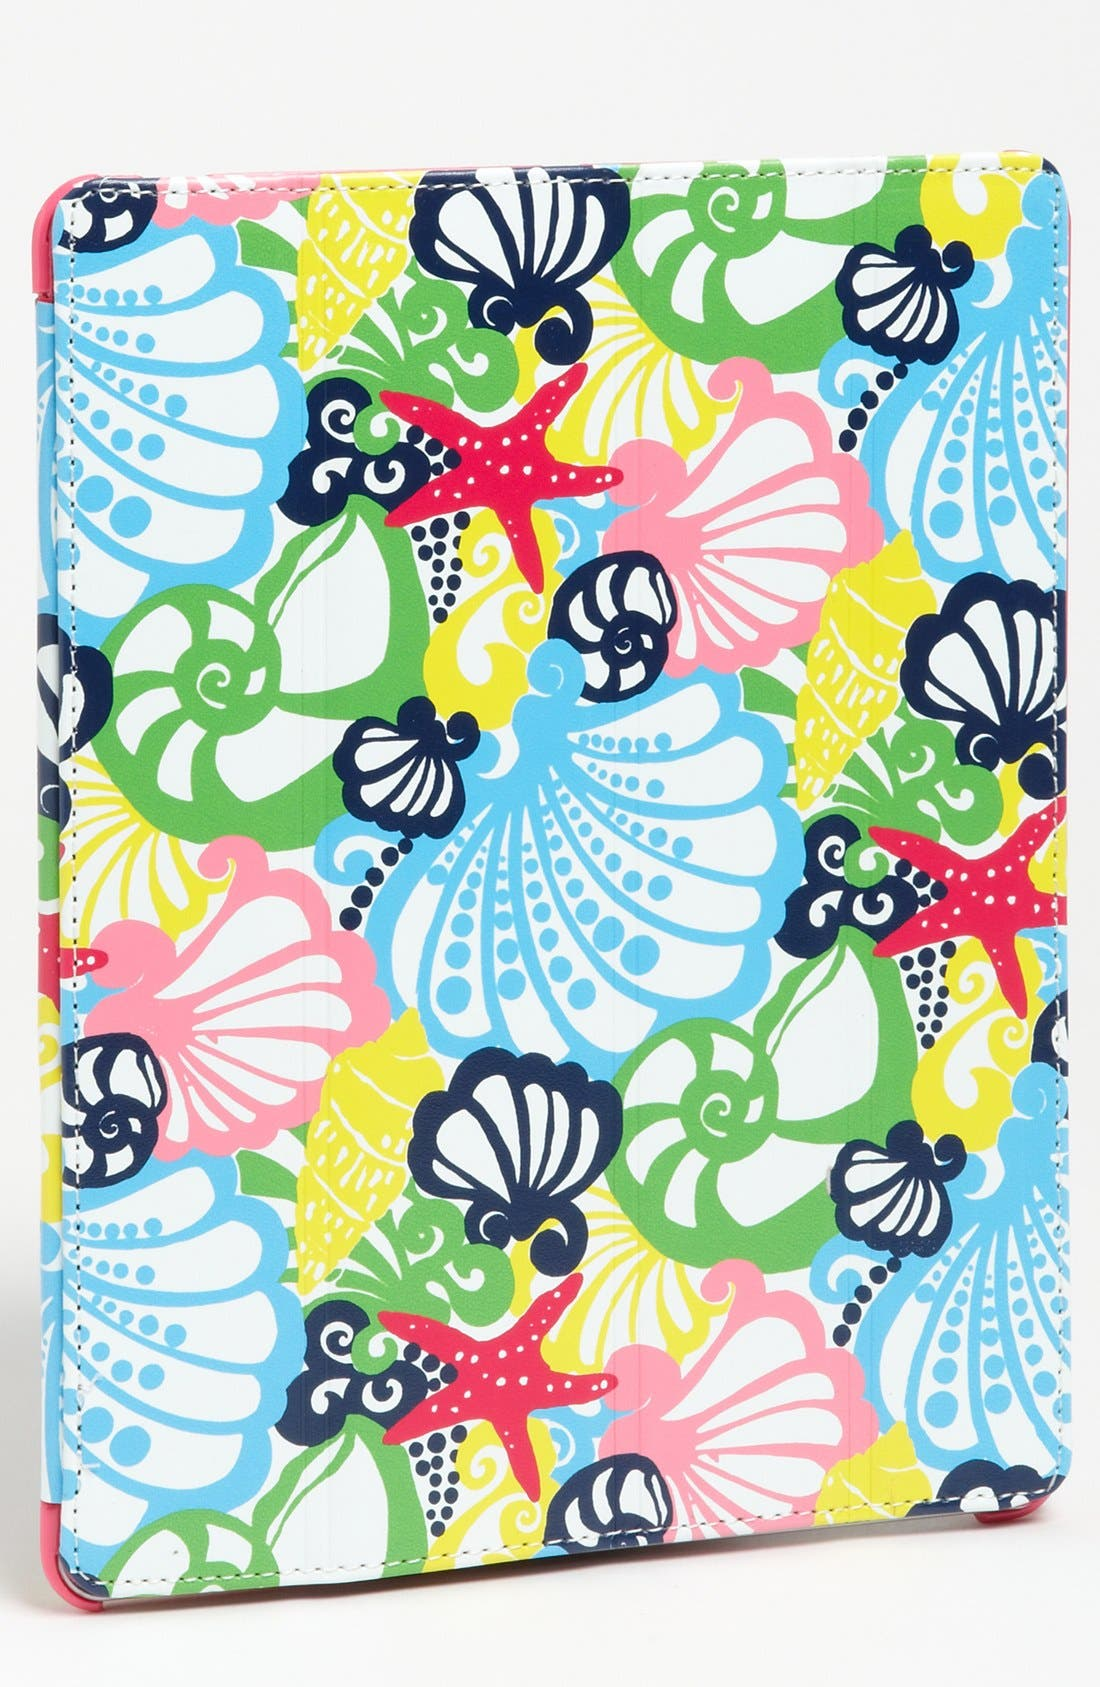 Alternate Image 1 Selected - Lilly Pulitzer® 'Chiquita Bonita' iPad 2 & 3 Case